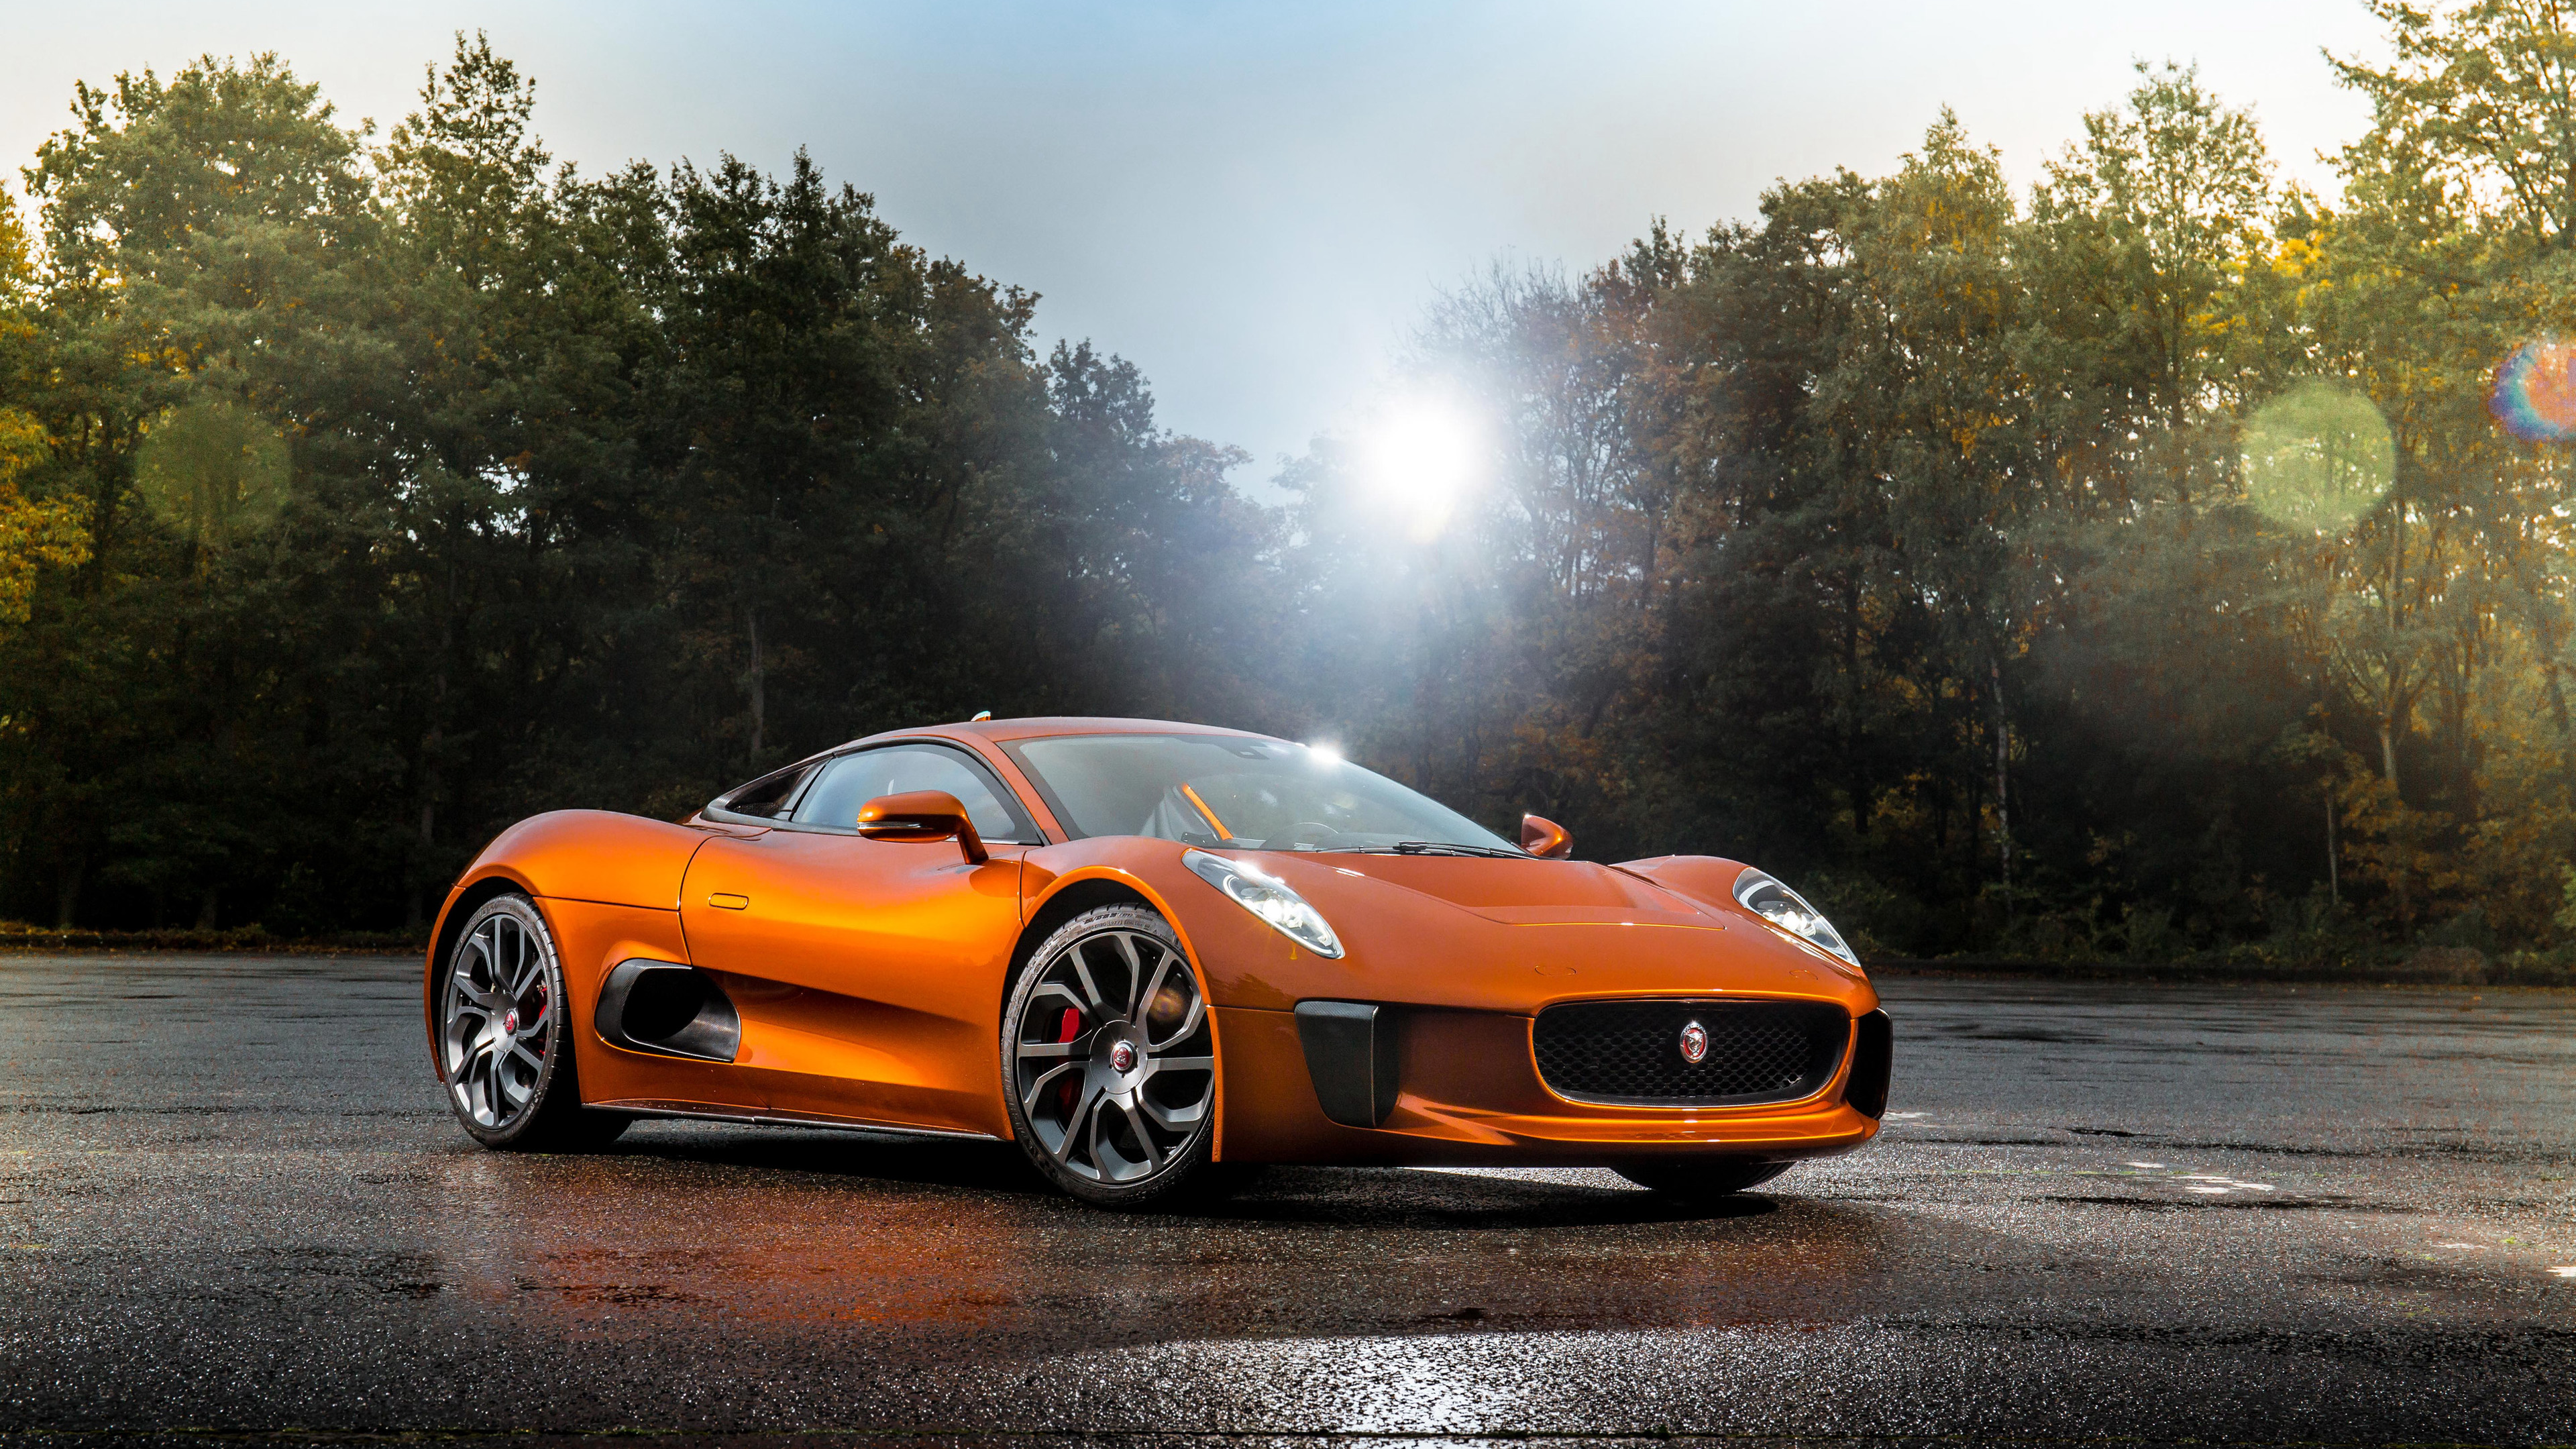 jaguar c x75 007 spectre 1539109929 - Jaguar C X75 007 Spectre - jaguar wallpapers, hd-wallpapers, cars wallpapers, 4k-wallpapers, 2018 cars wallpapers